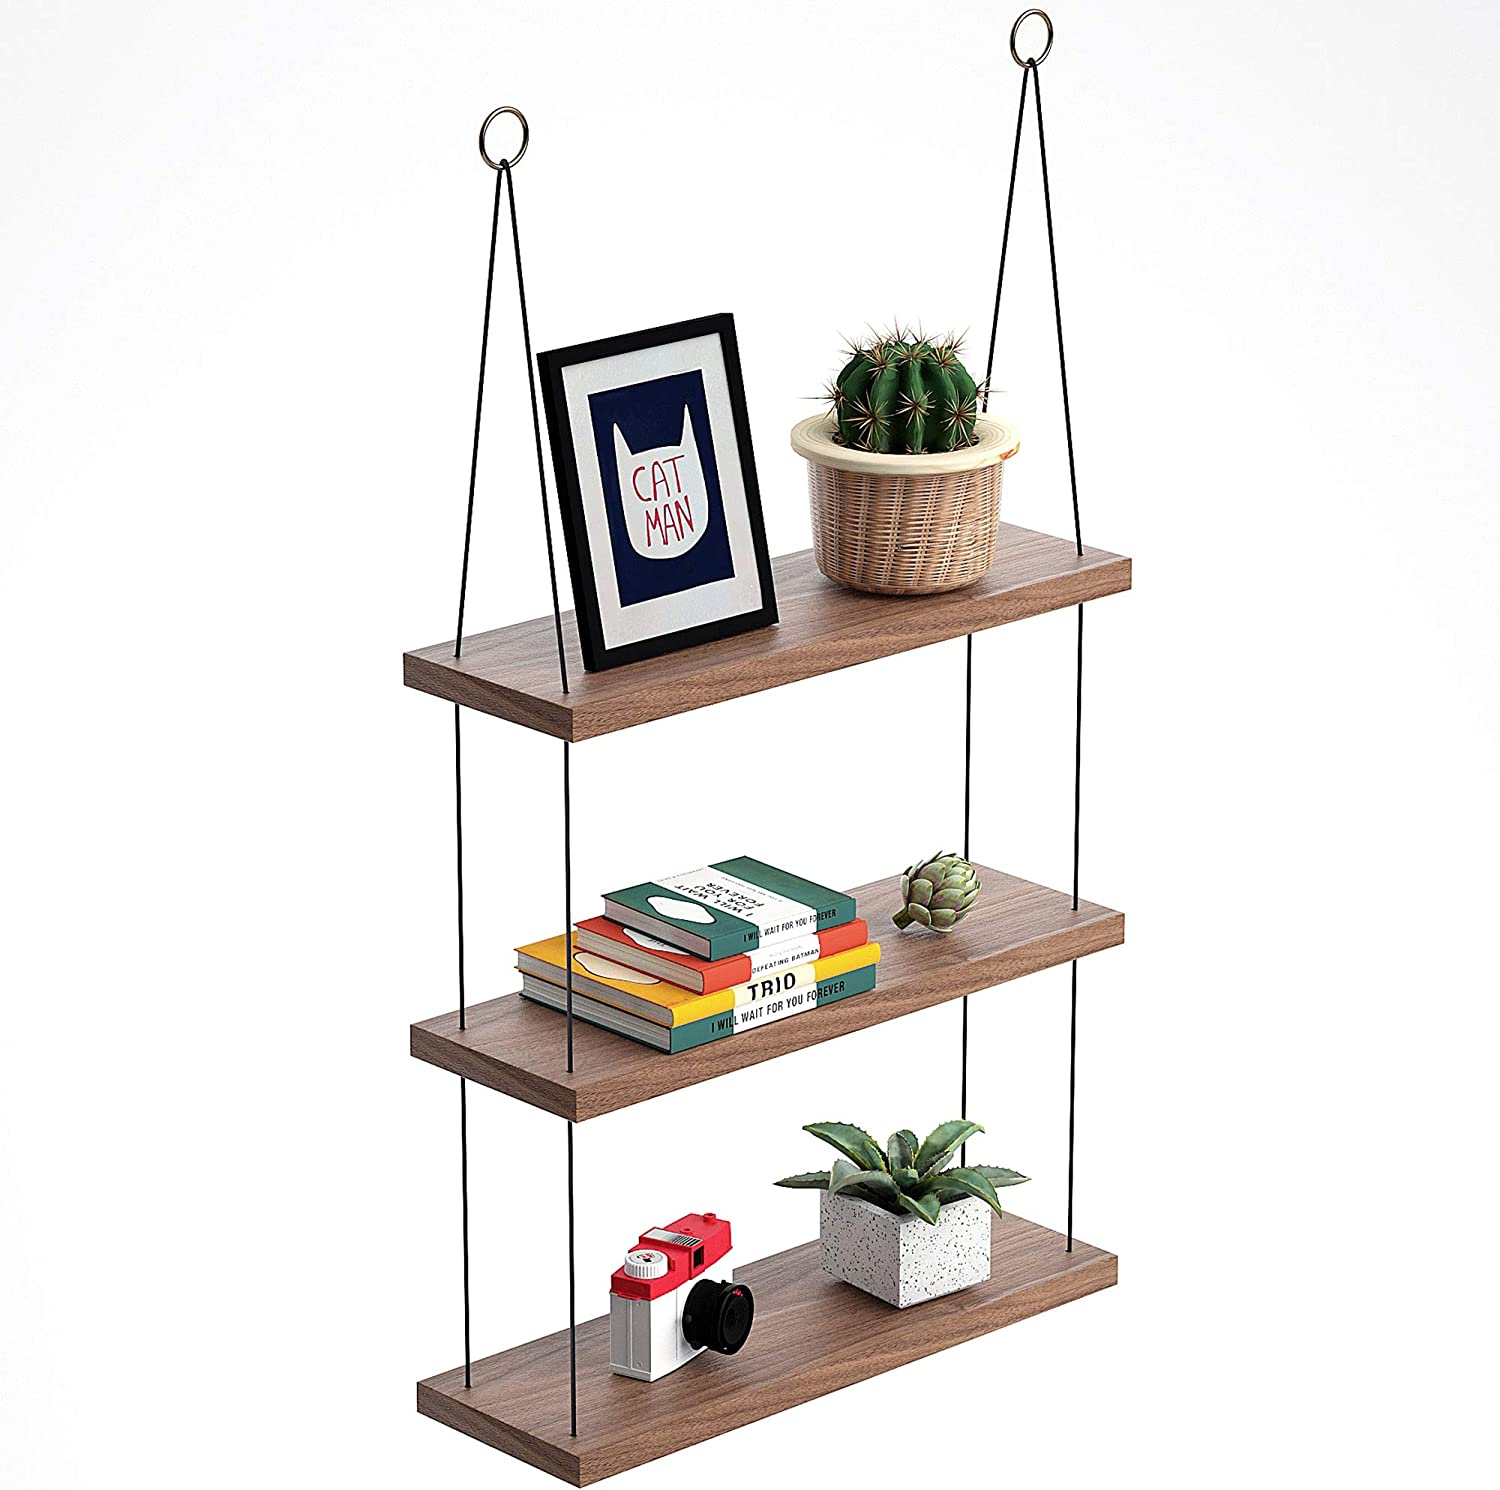 OMYSA Boho Wall Hanging Shelves 11 Tier - Lightweight, Customizable, Durable  Black Rope Floating Wood Shelf for Bedroom Living Room Bathroom Kitchen -